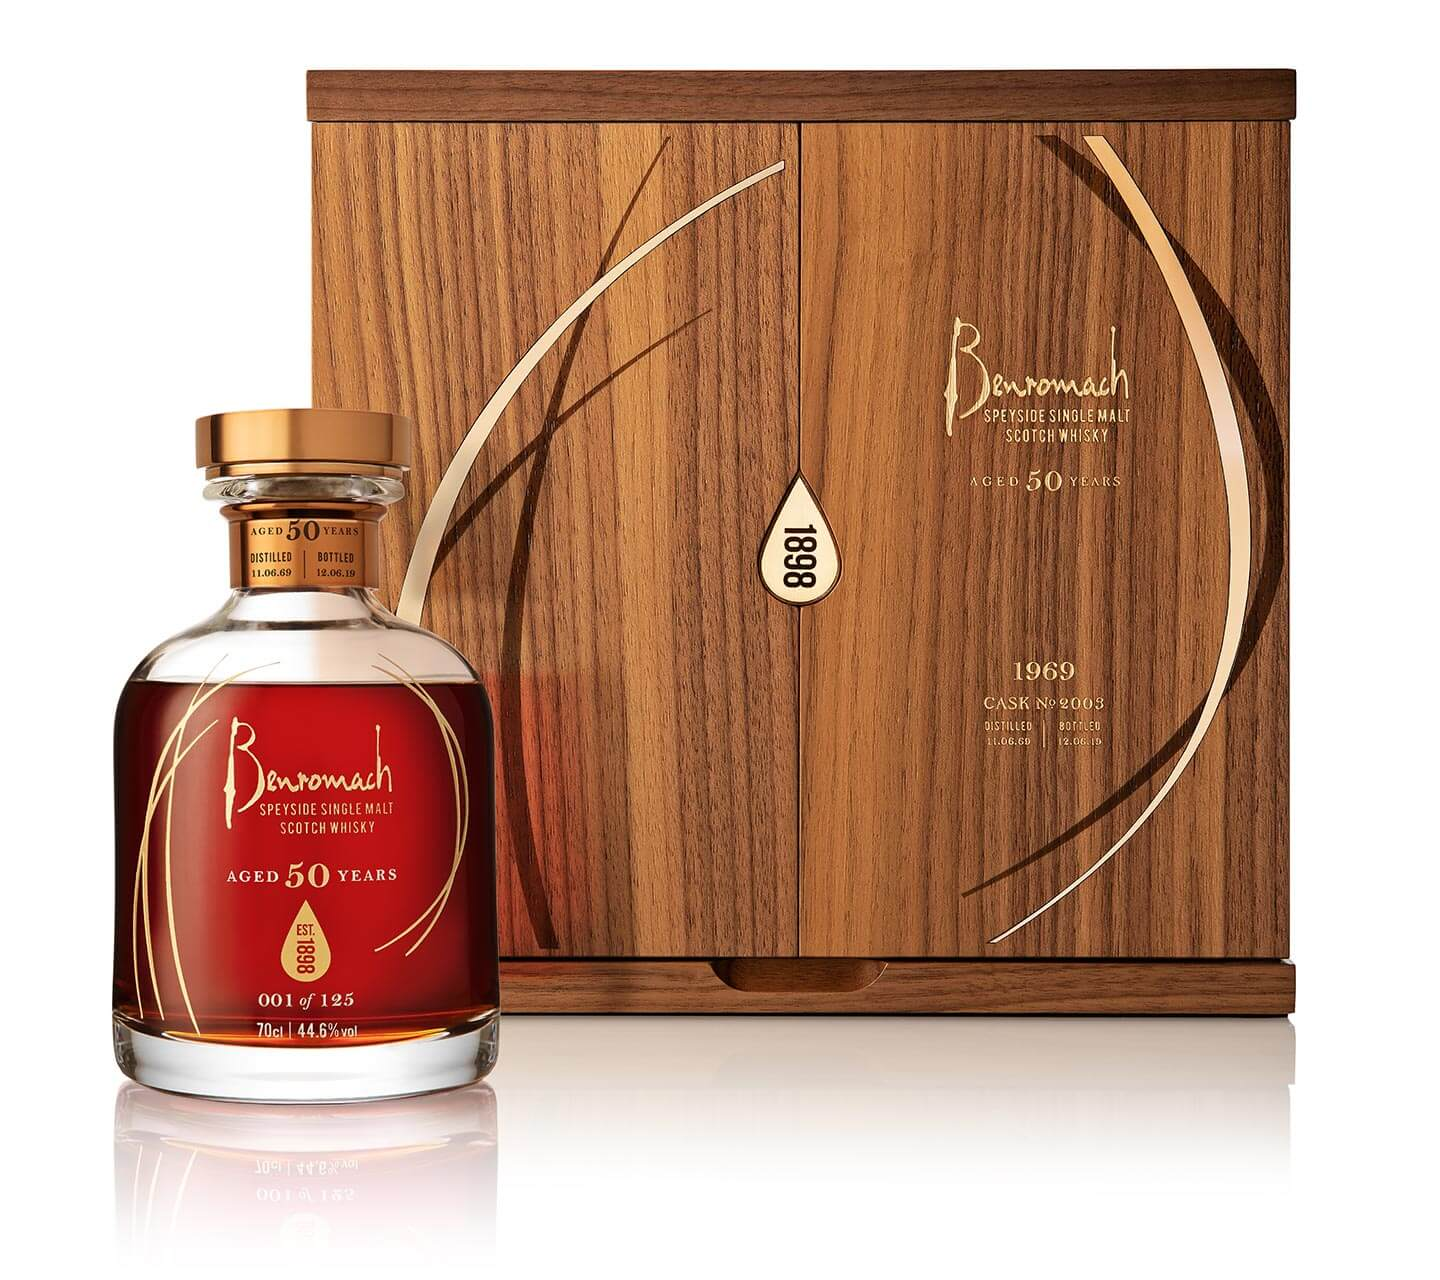 BENROMACH botella Whisky rara y exclusiva de 50 AÑOS